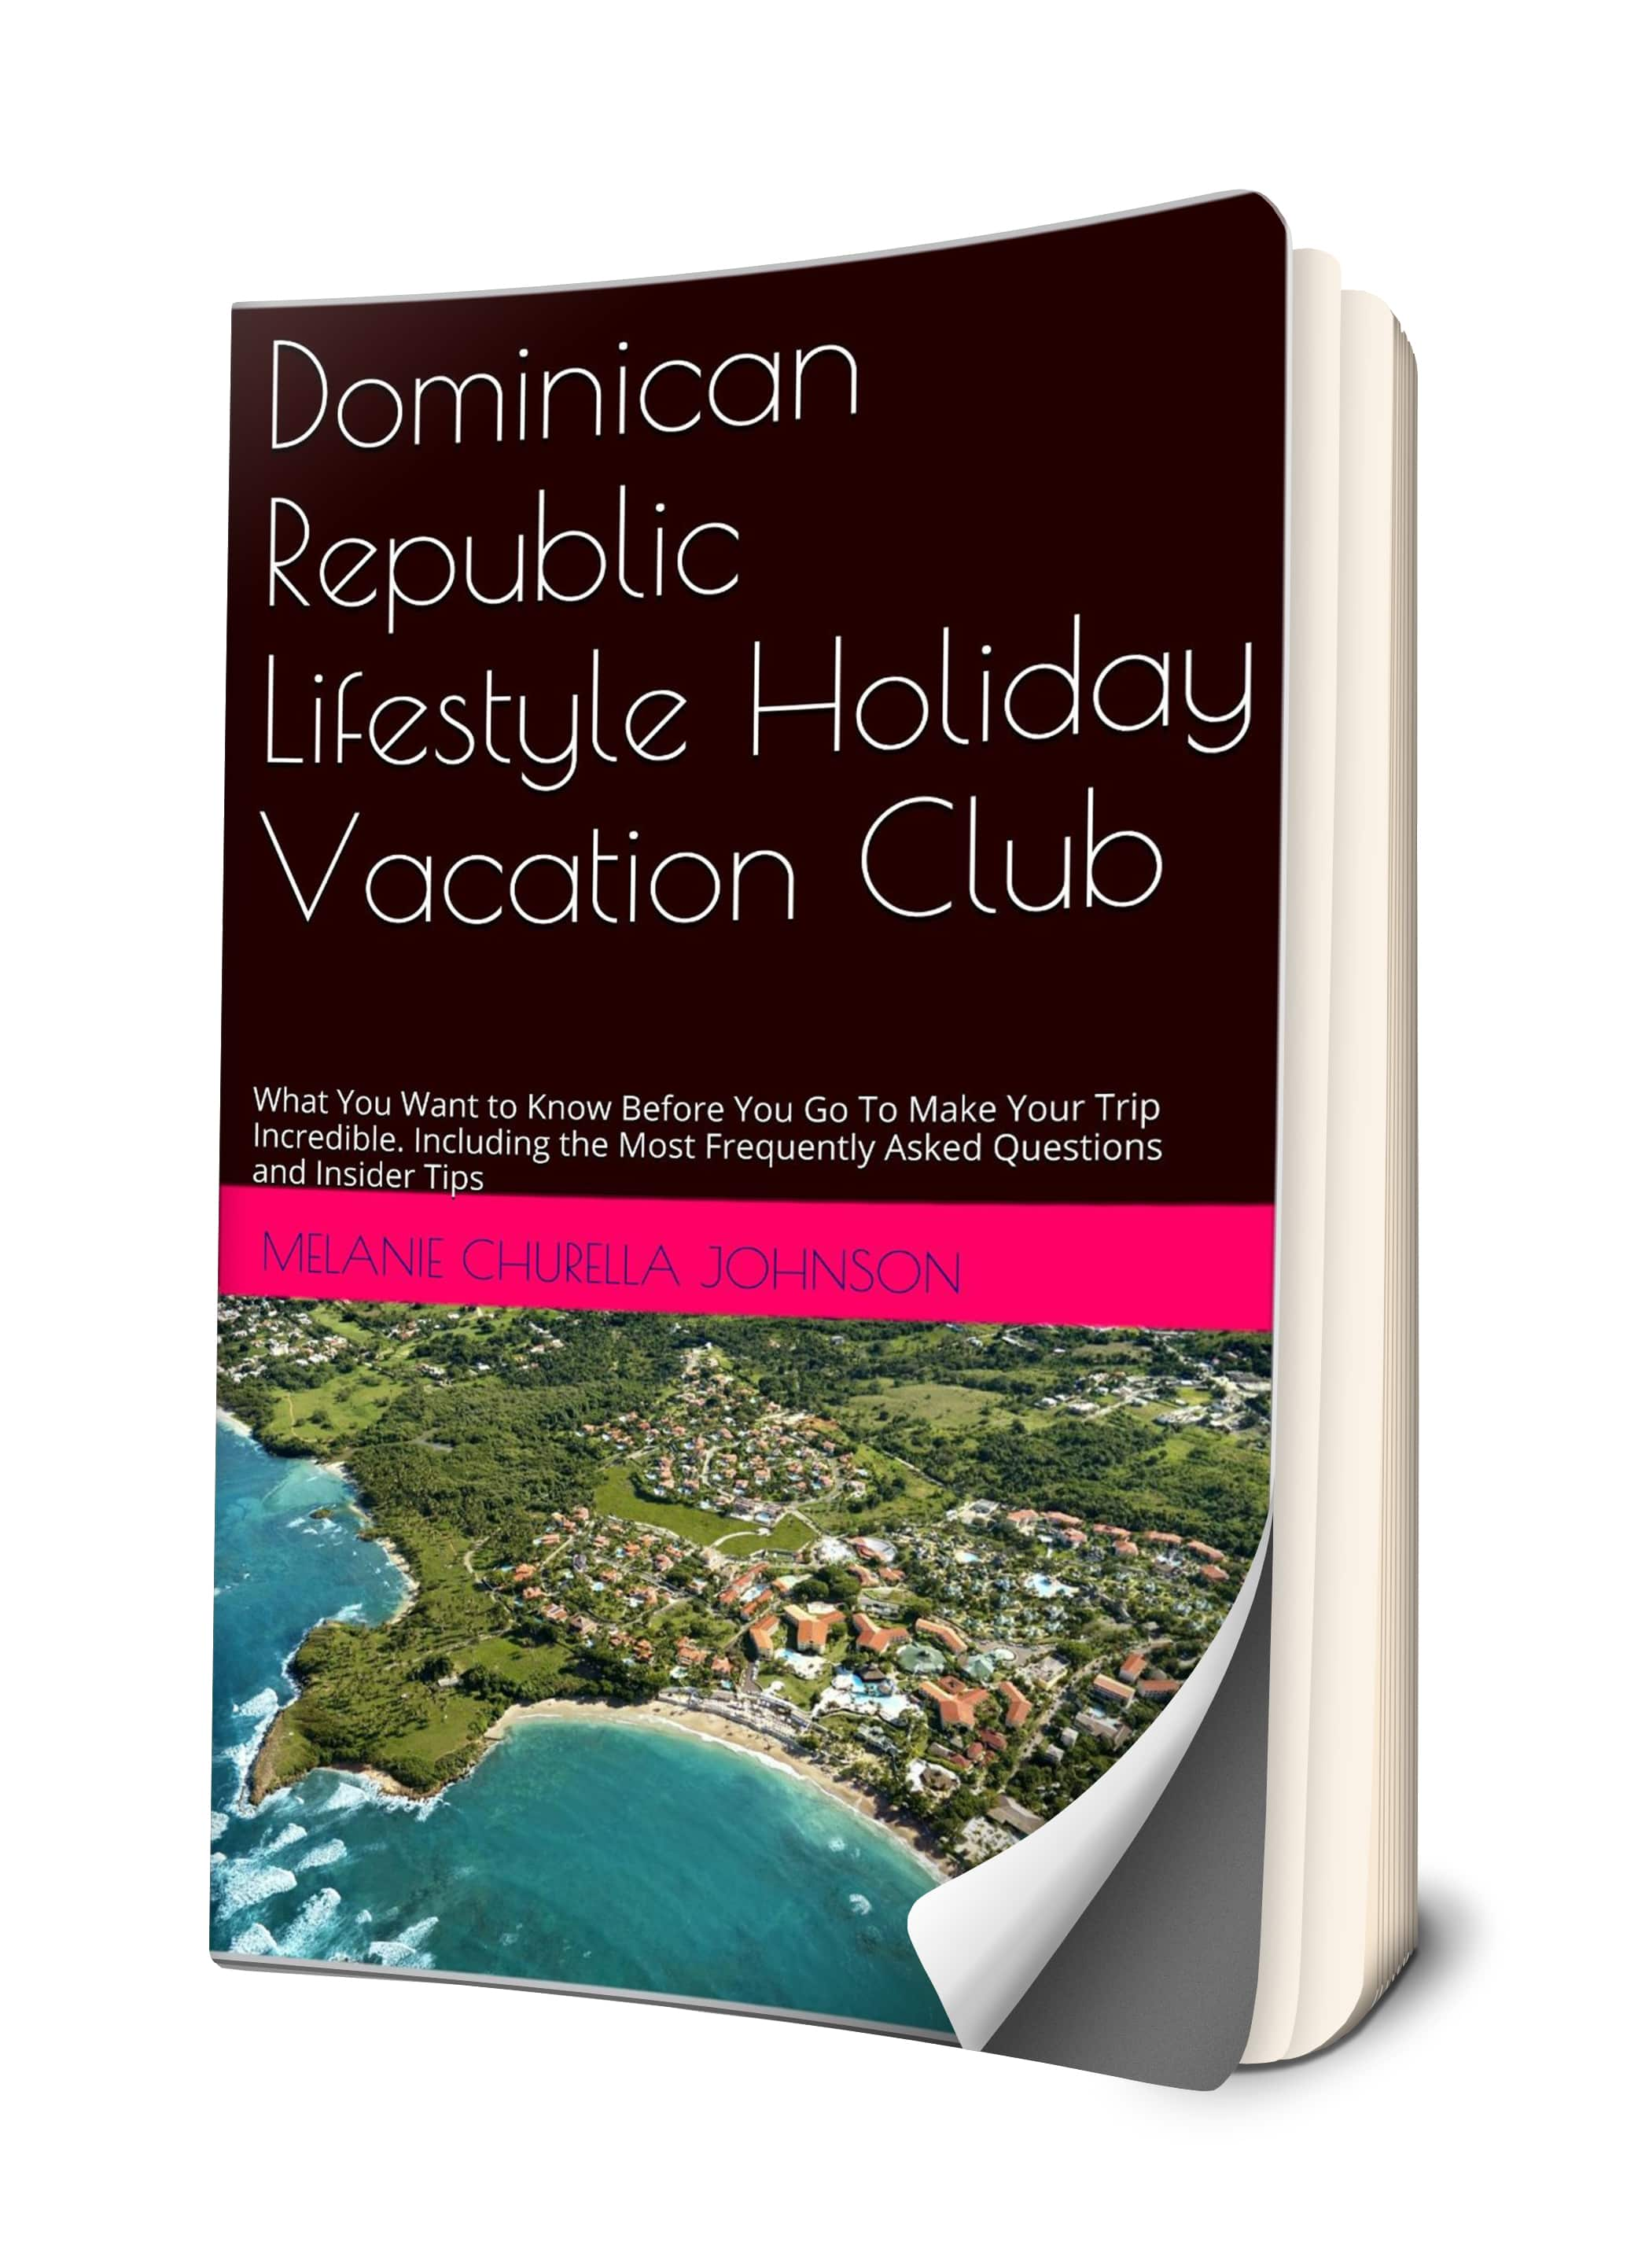 Dominican Republic Lifestyle Holiday Vacation